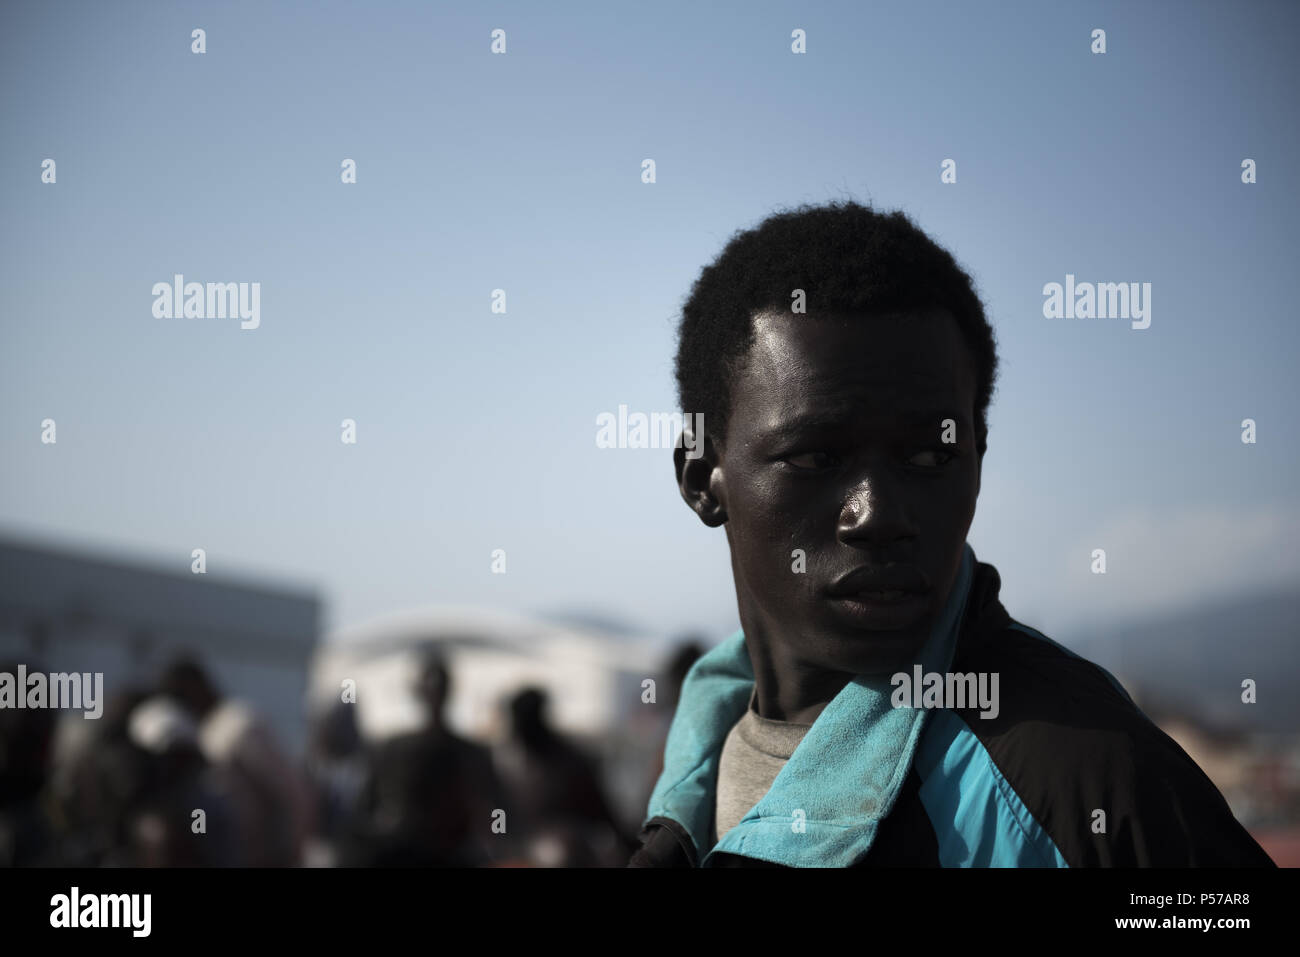 Motril, Granada, Spain. 25th June, 2018. Sub Saharan migrant look back as leave the rescue boat at Motril port. 96 migrants were rescued by Spanish Maritime Rescue and brought at Motril port. Today more than 500 migrants were rescued and assisted while they try to cross to Spain by dinghy. Credit: Carlos Gil/SOPA Images/ZUMA Wire/Alamy Live News - Stock Image